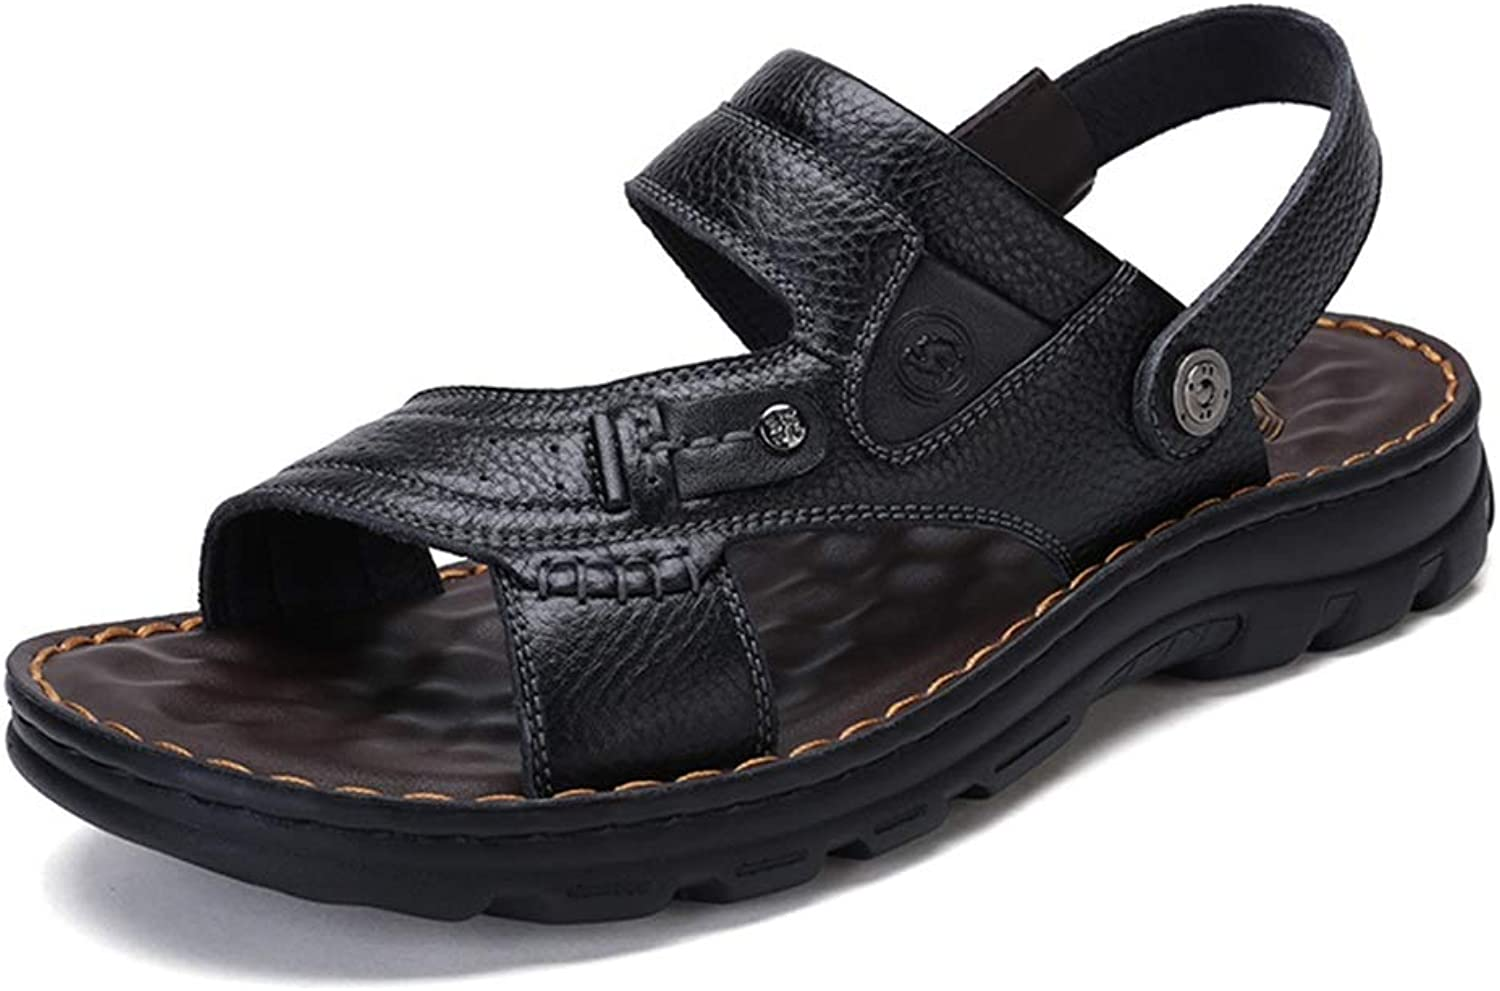 Sport Sandals Sandals Summer Beach Roman shoes Fishing Outdoor Breathable Casual shoes Walking Camping Men's Slippers Non-Slip Sports Sandals (color   Black, Size   8.5UK 10.5US)